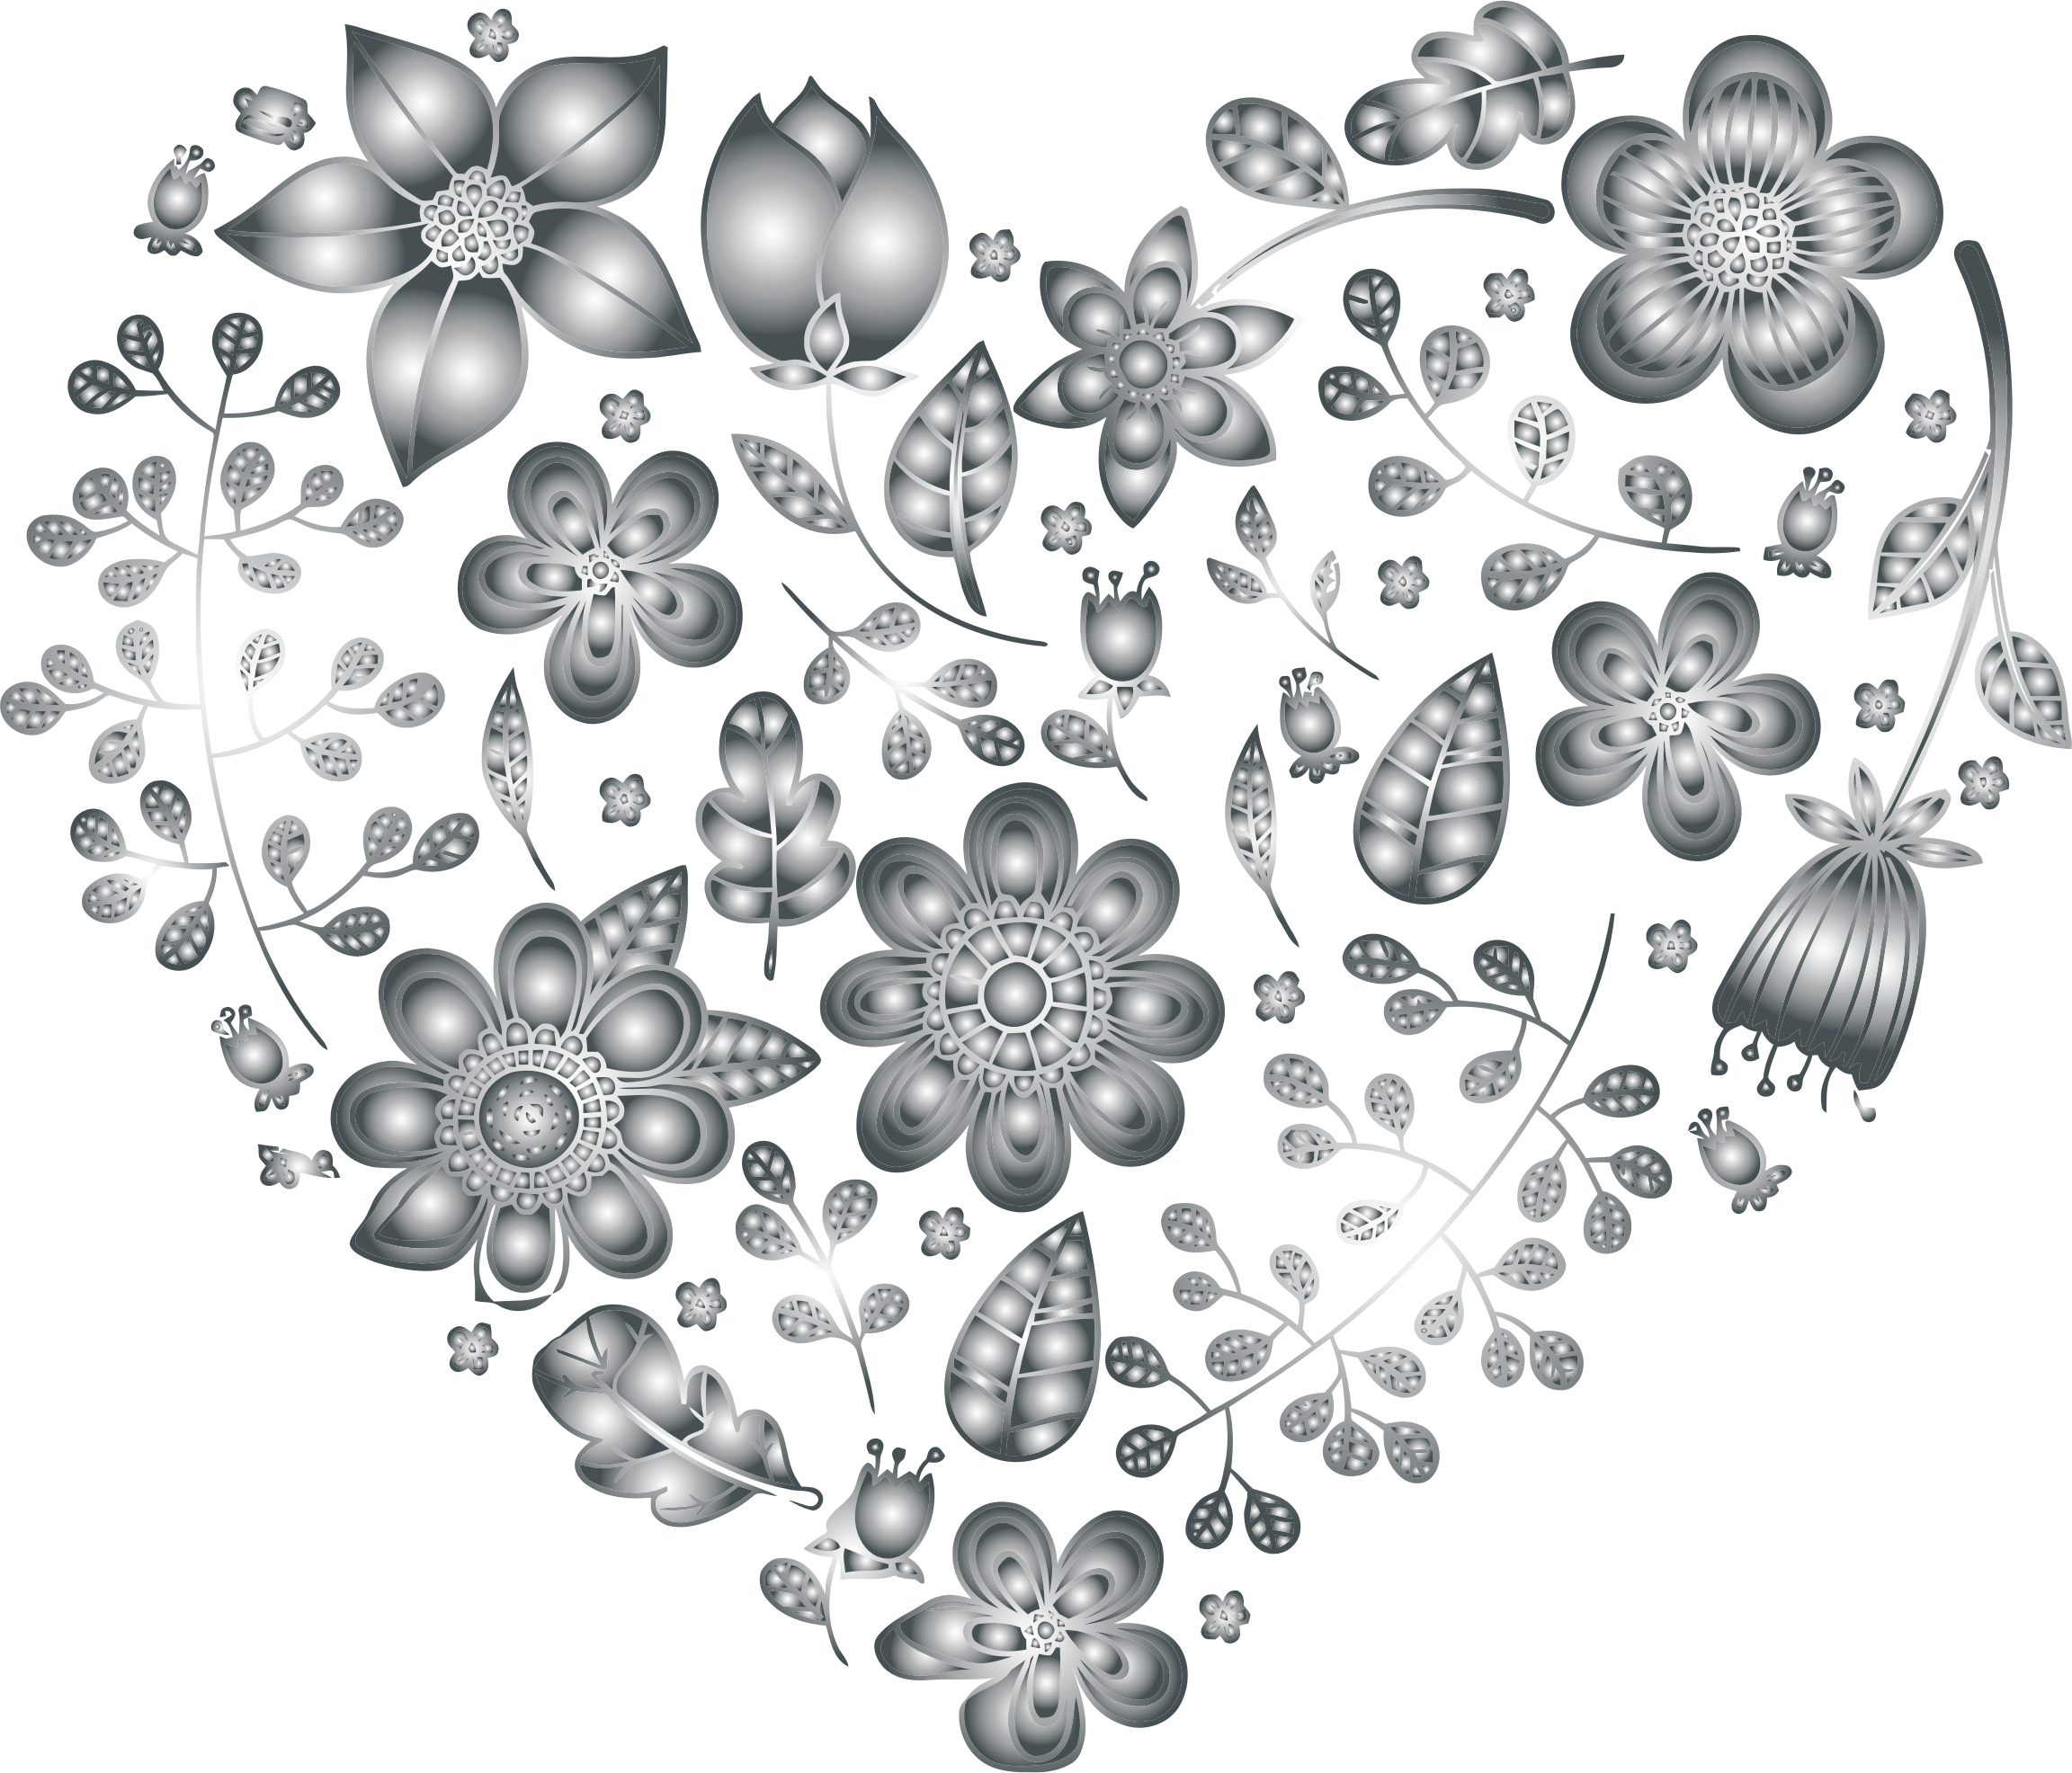 Grayscale Floral Heart 3 No Background by GDJ